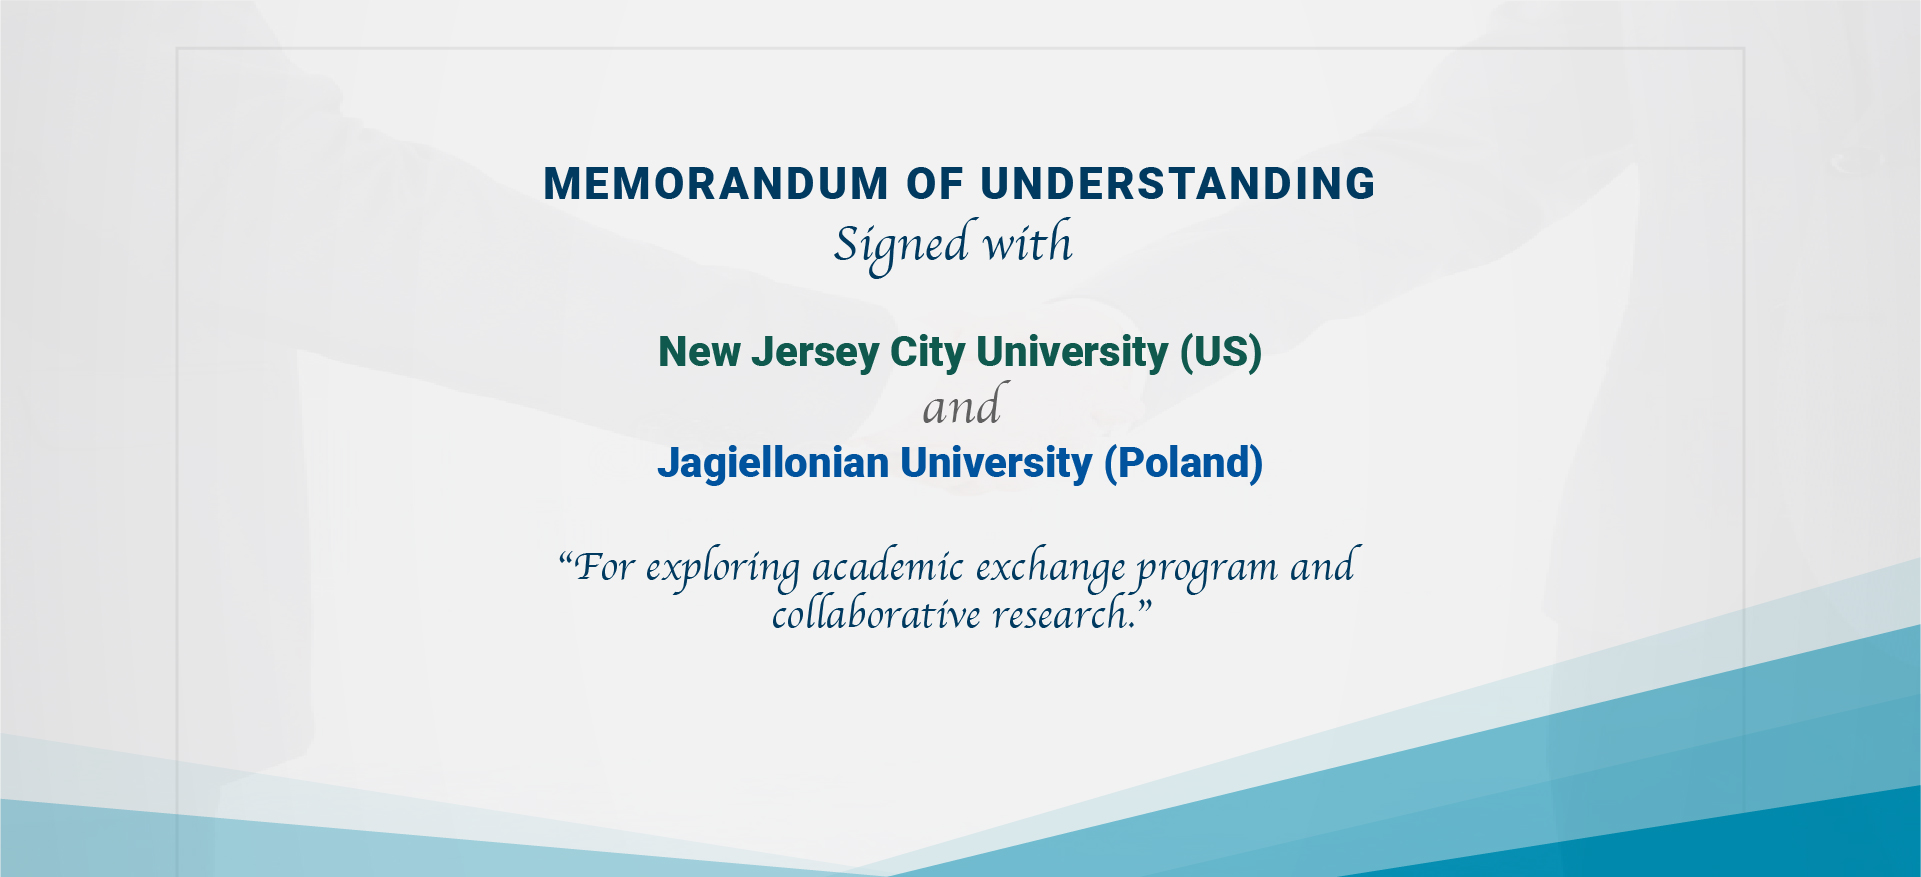 MOU signed with New Jersey City University (US) and Jagiellonian University (Poland)